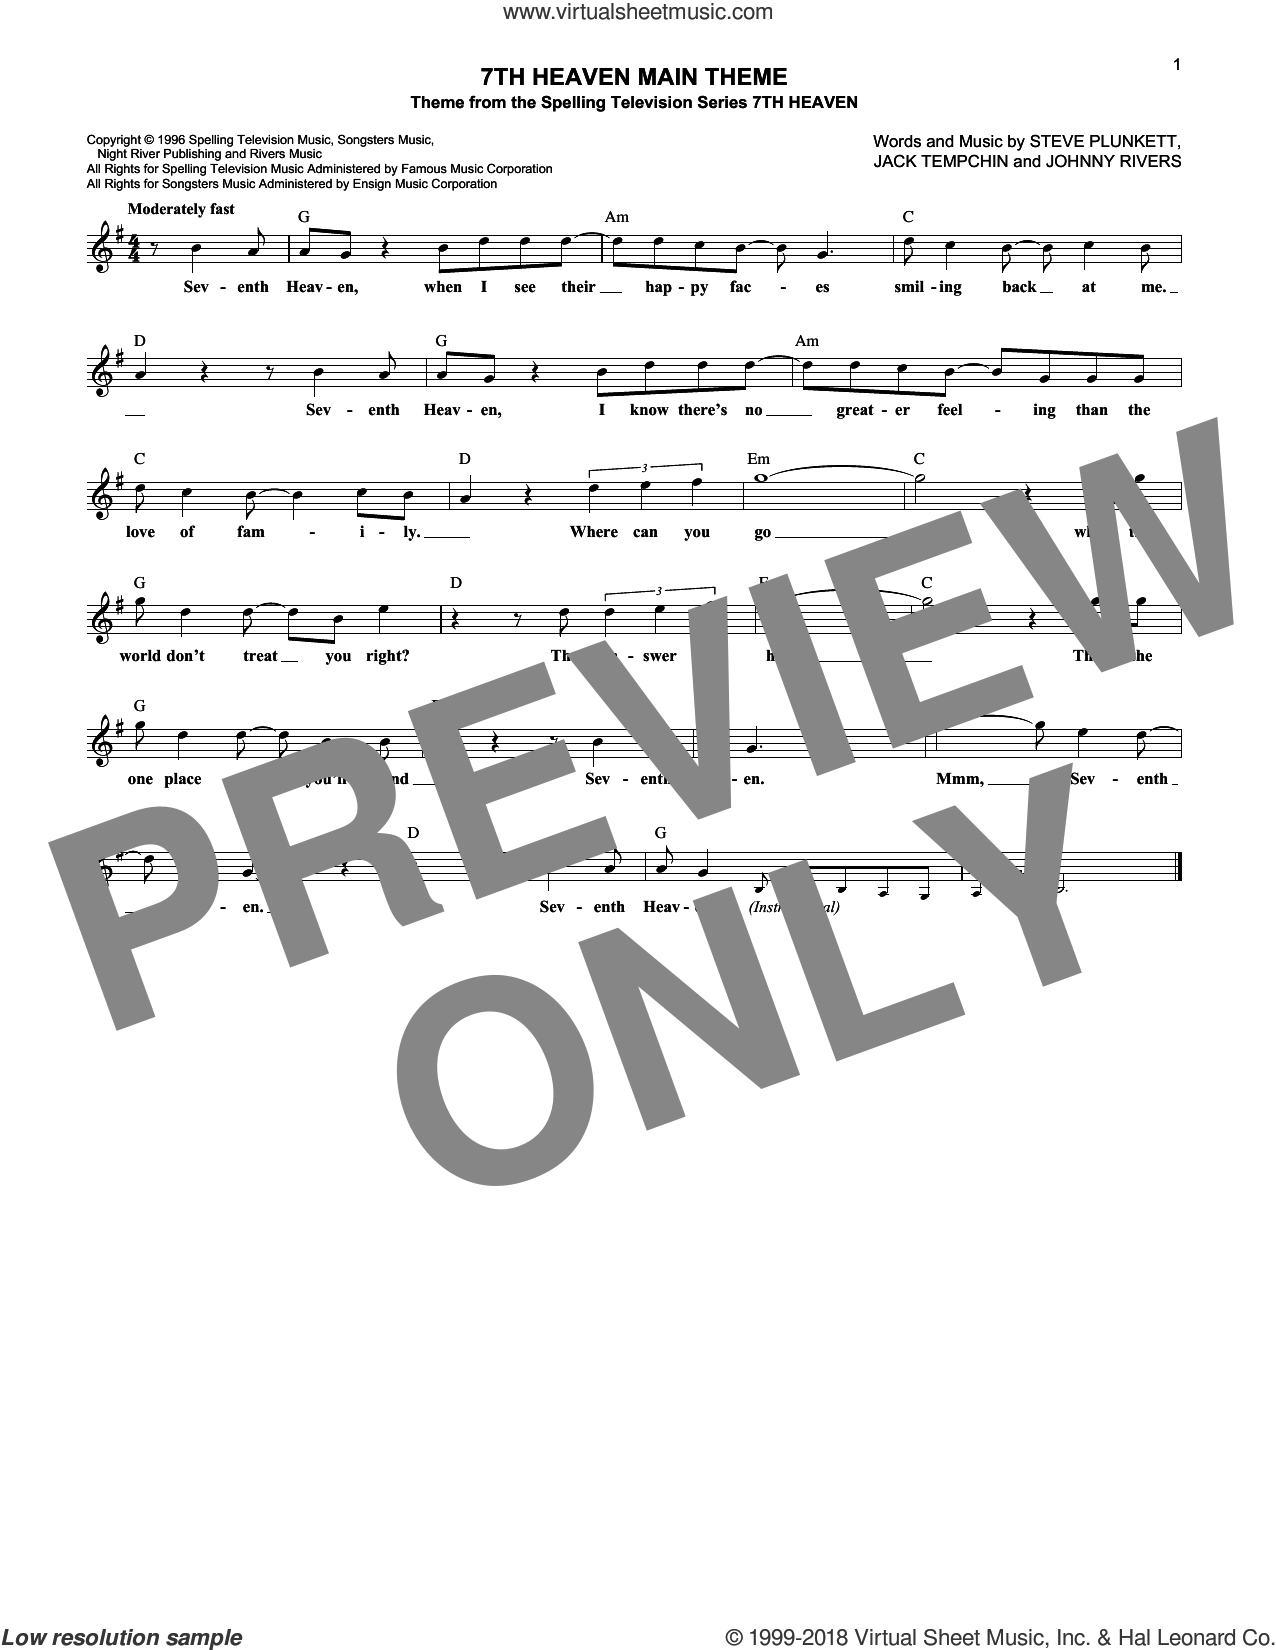 7th Heaven Main Theme sheet music for voice and other instruments (fake book) by Steve Plunkett, Jack Tempchin and Johnny Rivers, intermediate skill level